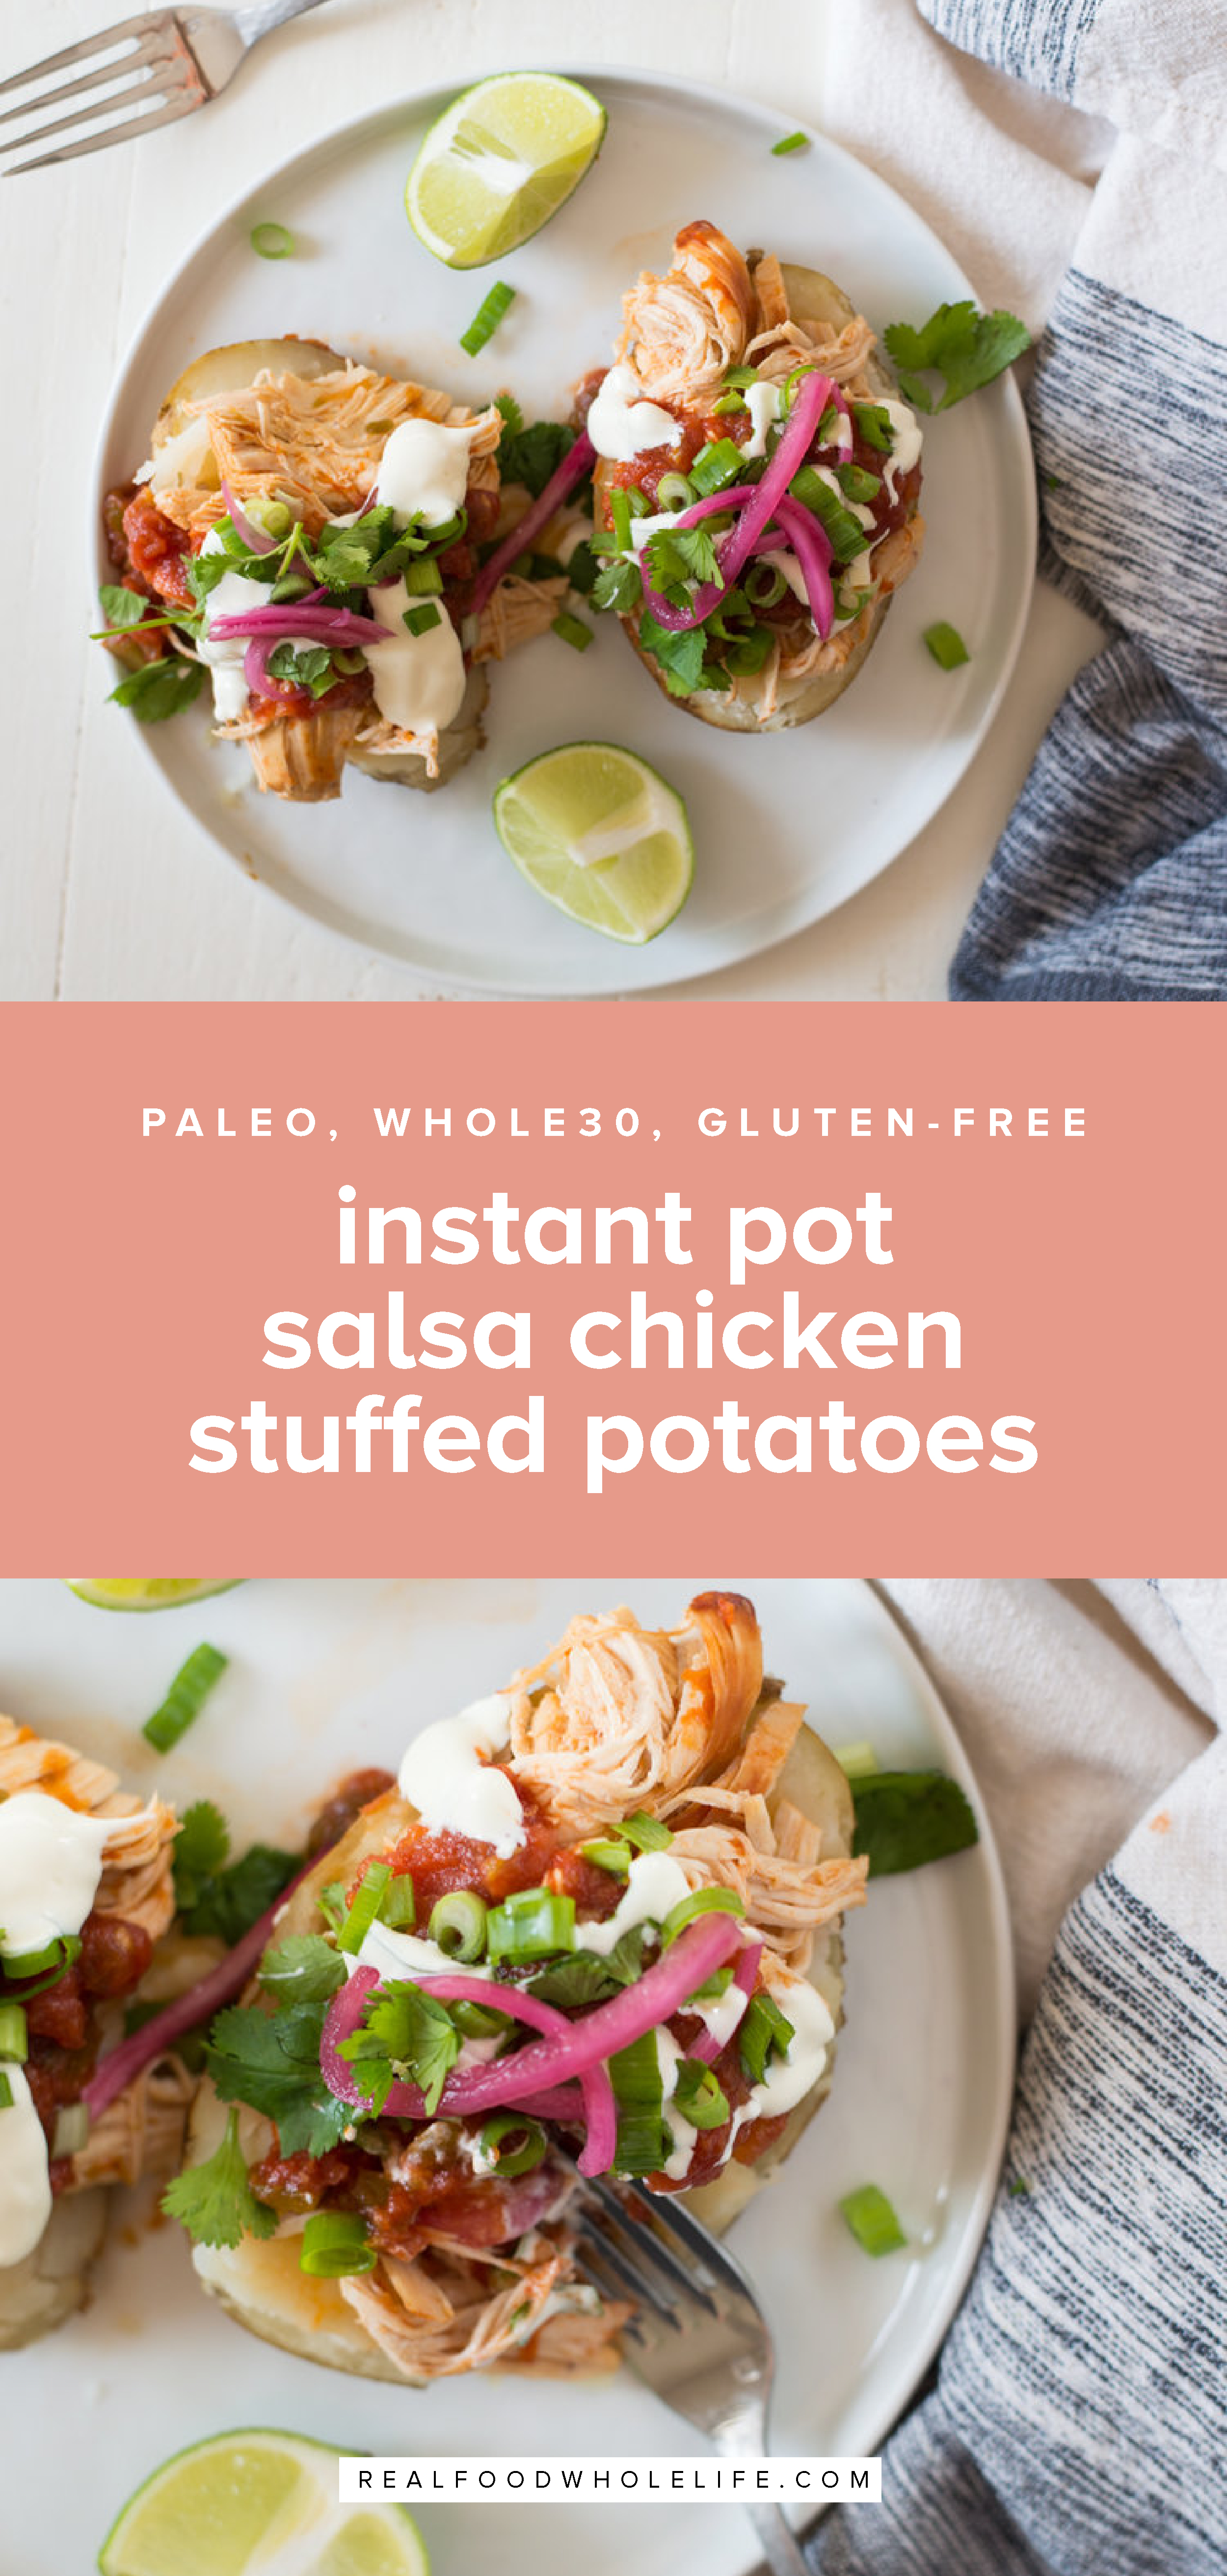 3-Ingredient Instant Pot Salsa Chicken Stuffed Potatoes is the easiest, most delicious, crazy simple recipe. Everything cooks at once, so dinner's done in minutes! #realfoodwholelife #Glutenfree #dairyfree #grainfree #paleo #Whole30 #healthyrecipe